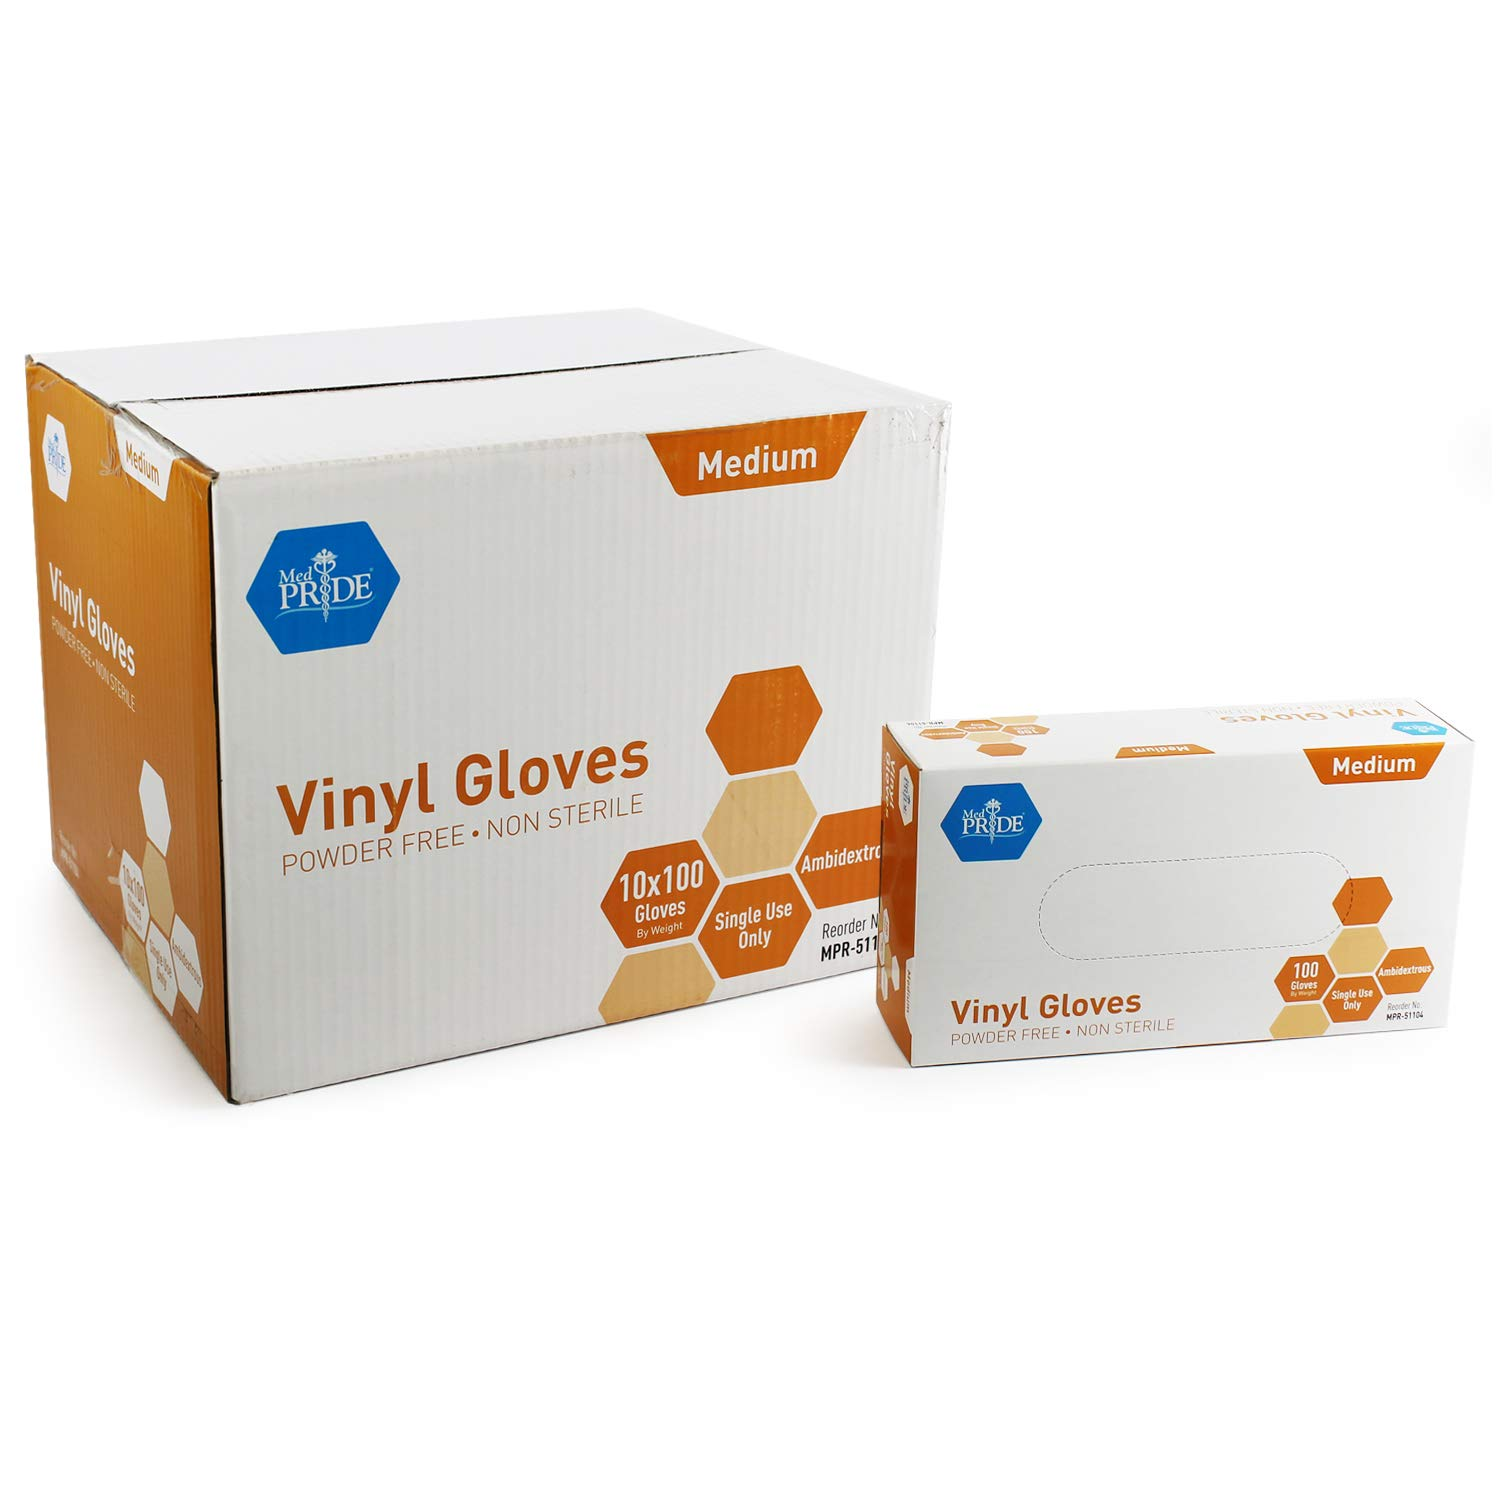 Medpride Vinyl Gloves| Medium Case of 1000| 4.3 mil Thick, Powder-Free, Non-Sterile, Heavy Duty Disposable Gloves| Professional Grade for Healthcare, Medical, Food Handling, and More